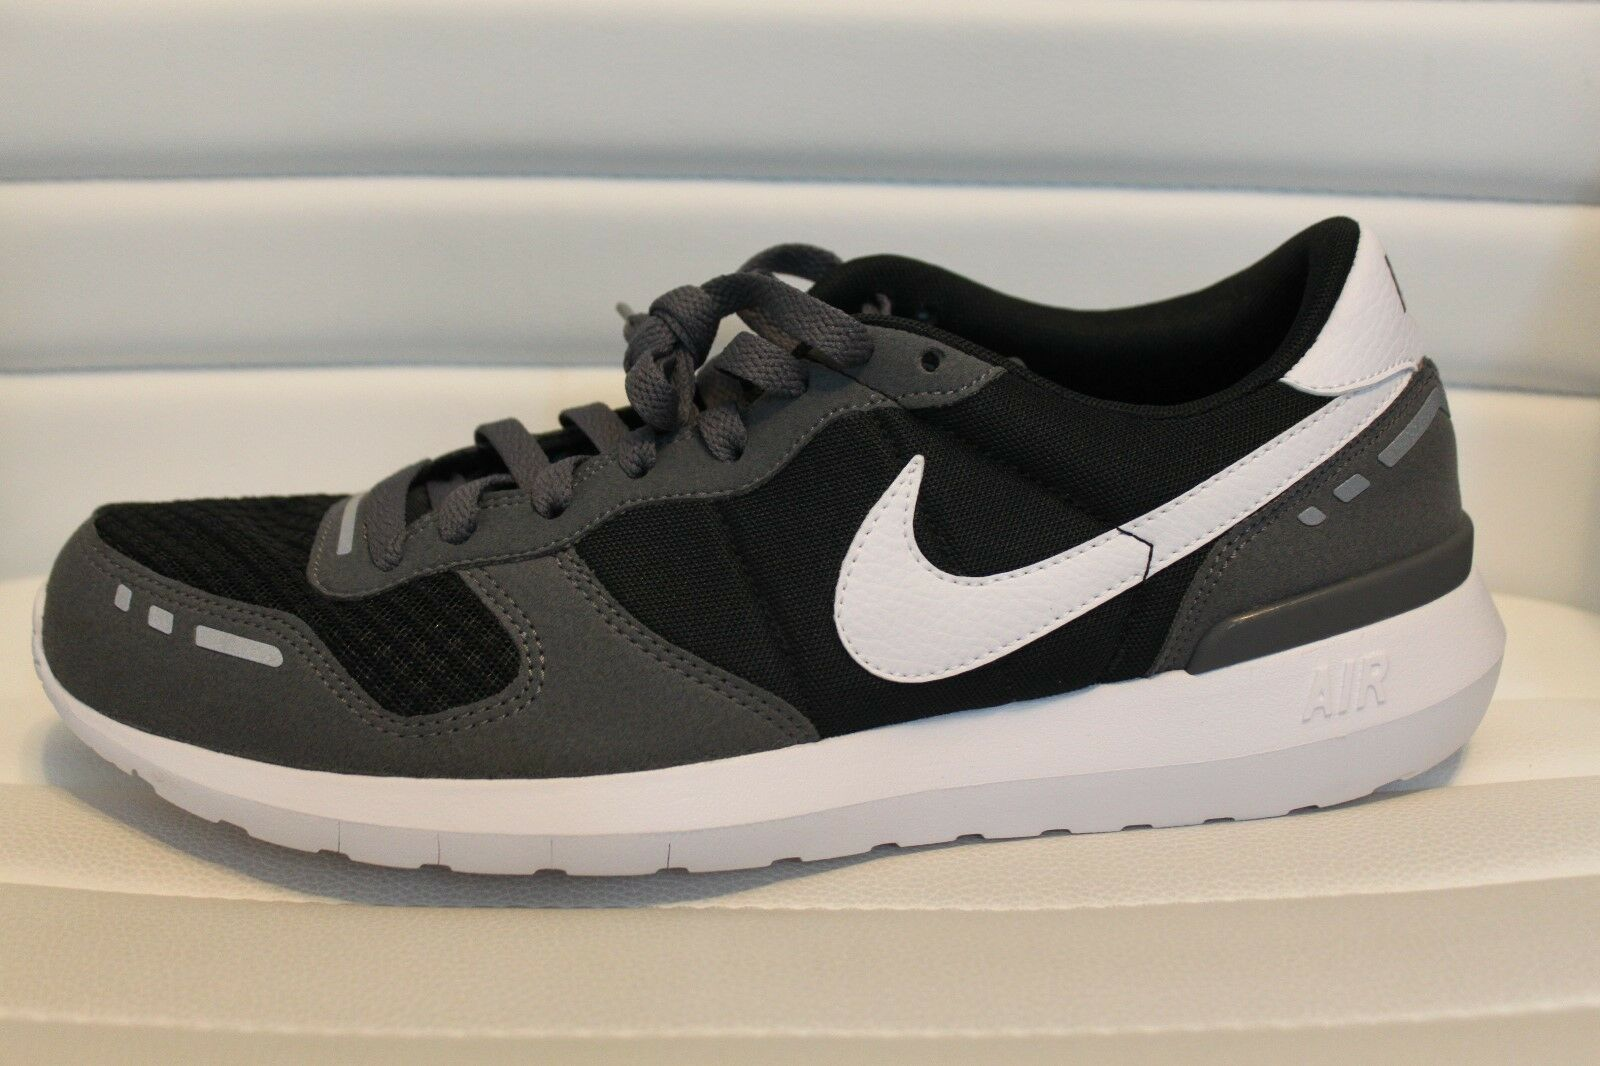 Nike Air VRTX '17 Men's Running Shoes Black Gray White Suede 10.5 MSRP 145 NEW